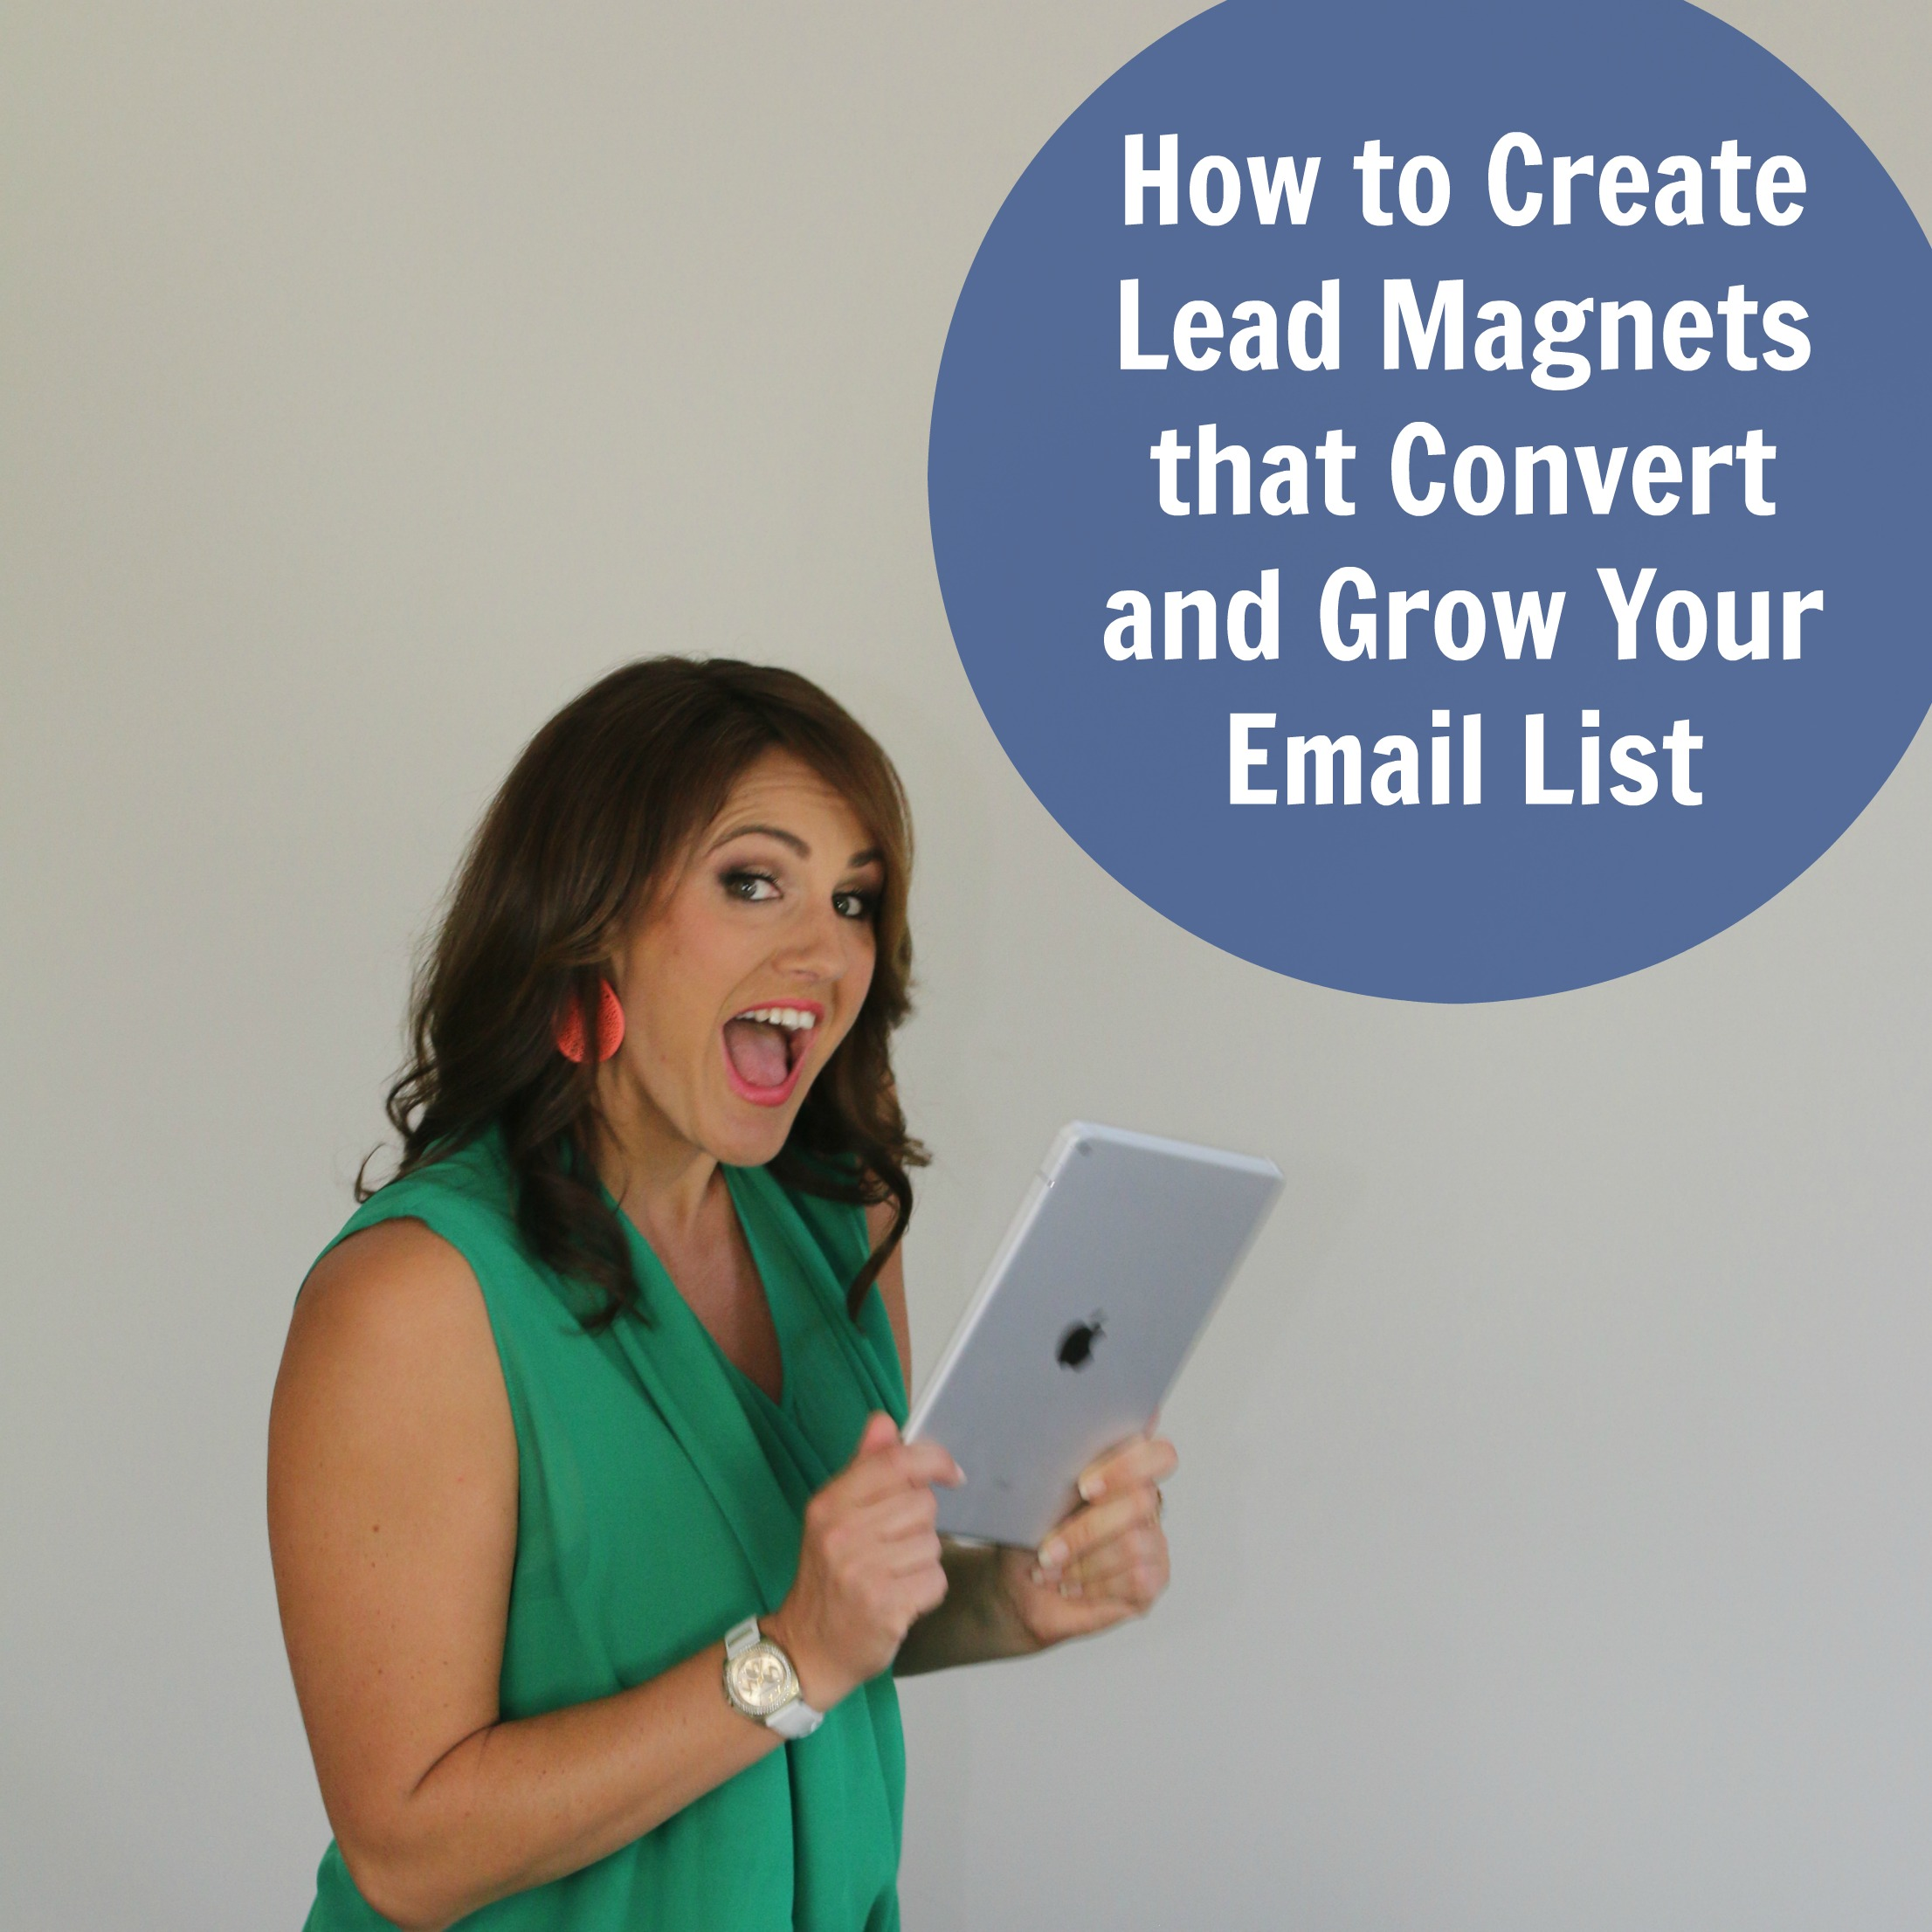 [235] How to Create Lead Magnets that Convert and Grow Your Email List